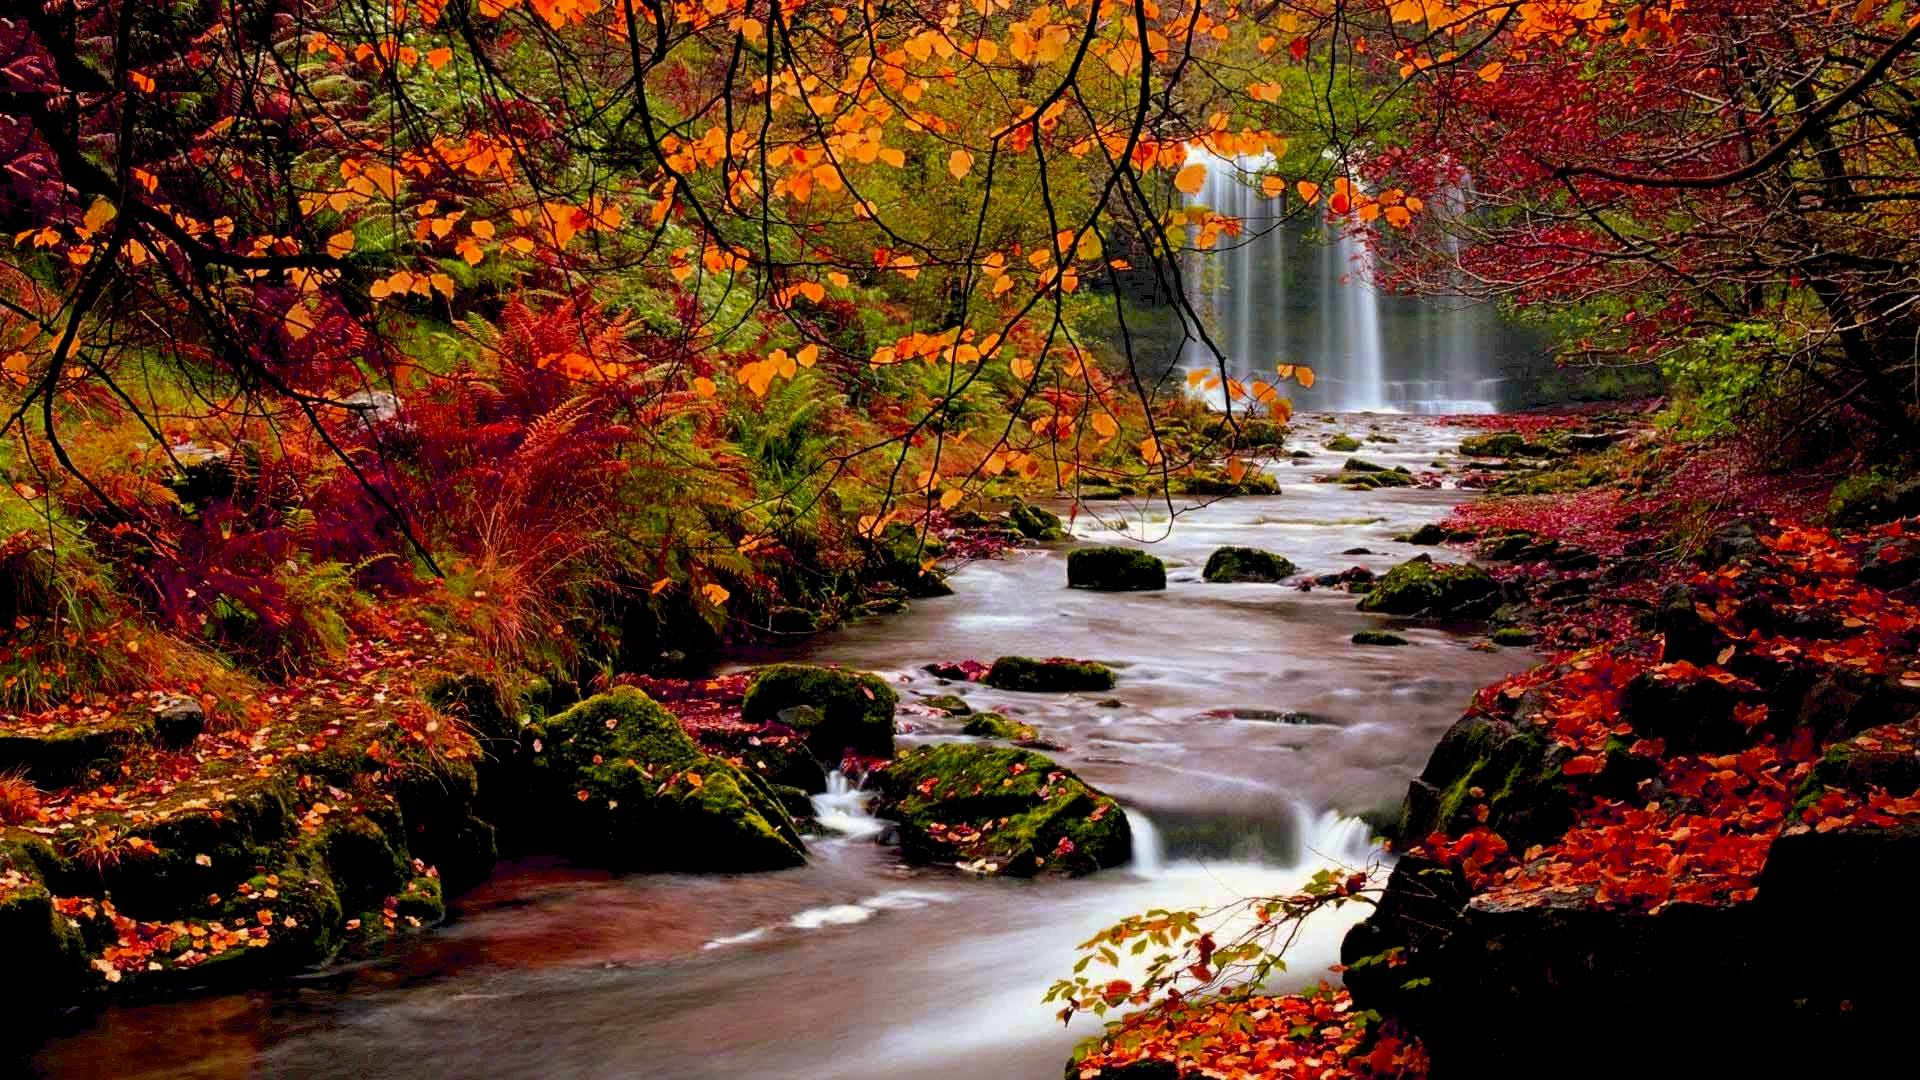 Autumn Wallpapers HD - Wallpaper Cave